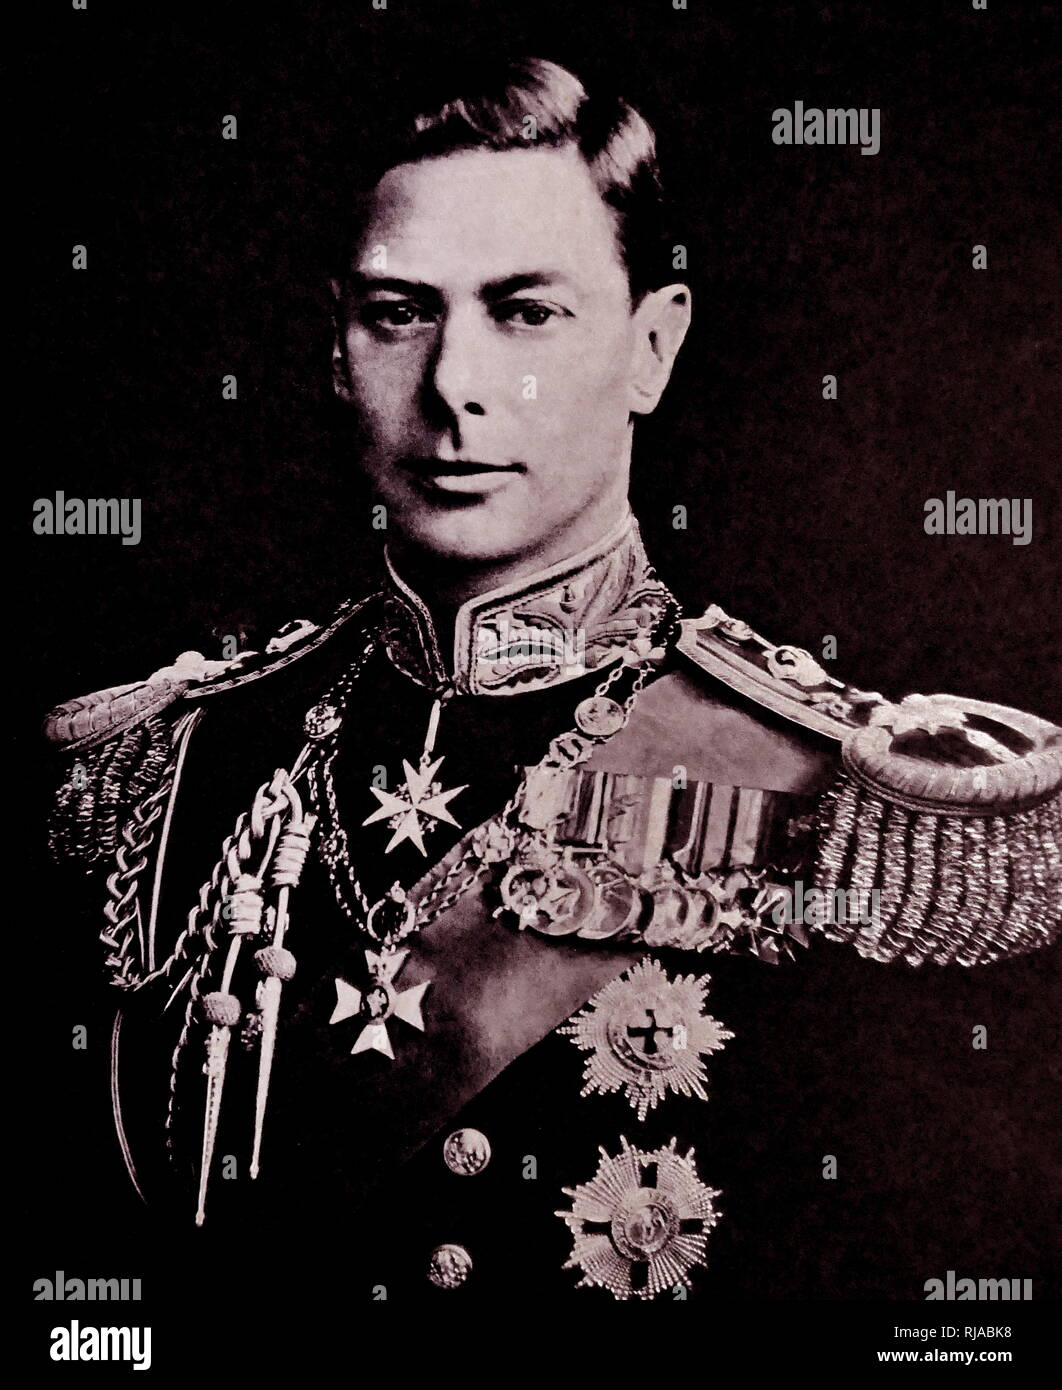 H.M. King George VI of the United Kingdom in the full dress uniform of a British field marshal, 1937. George VI (Albert Frederick Arthur George). (1895 – 1952); King of the United Kingdom and the Dominions of the British Commonwealth from 1936 until his death. He was the last Emperor of India and the first Head of the Commonwealth. - Stock Image